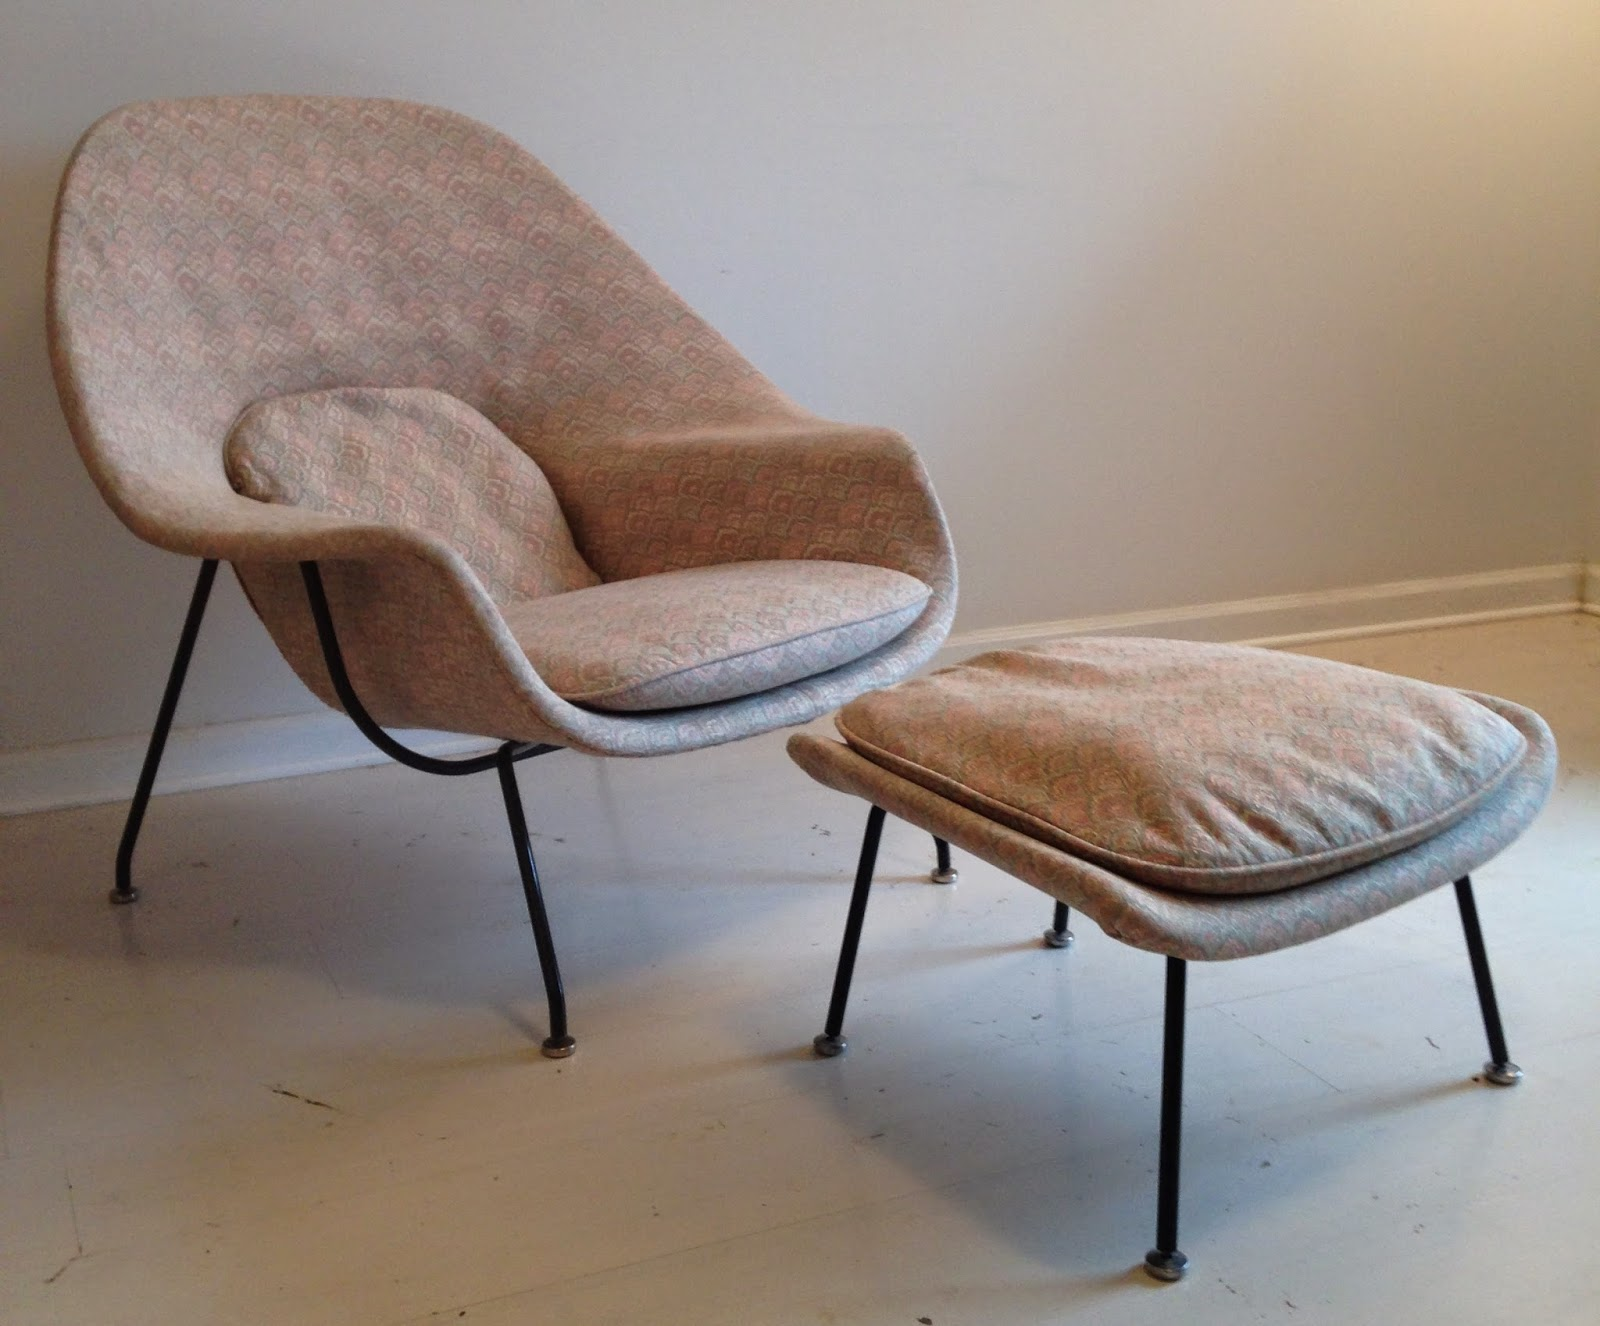 Remnant: Before & After: Womb Chair